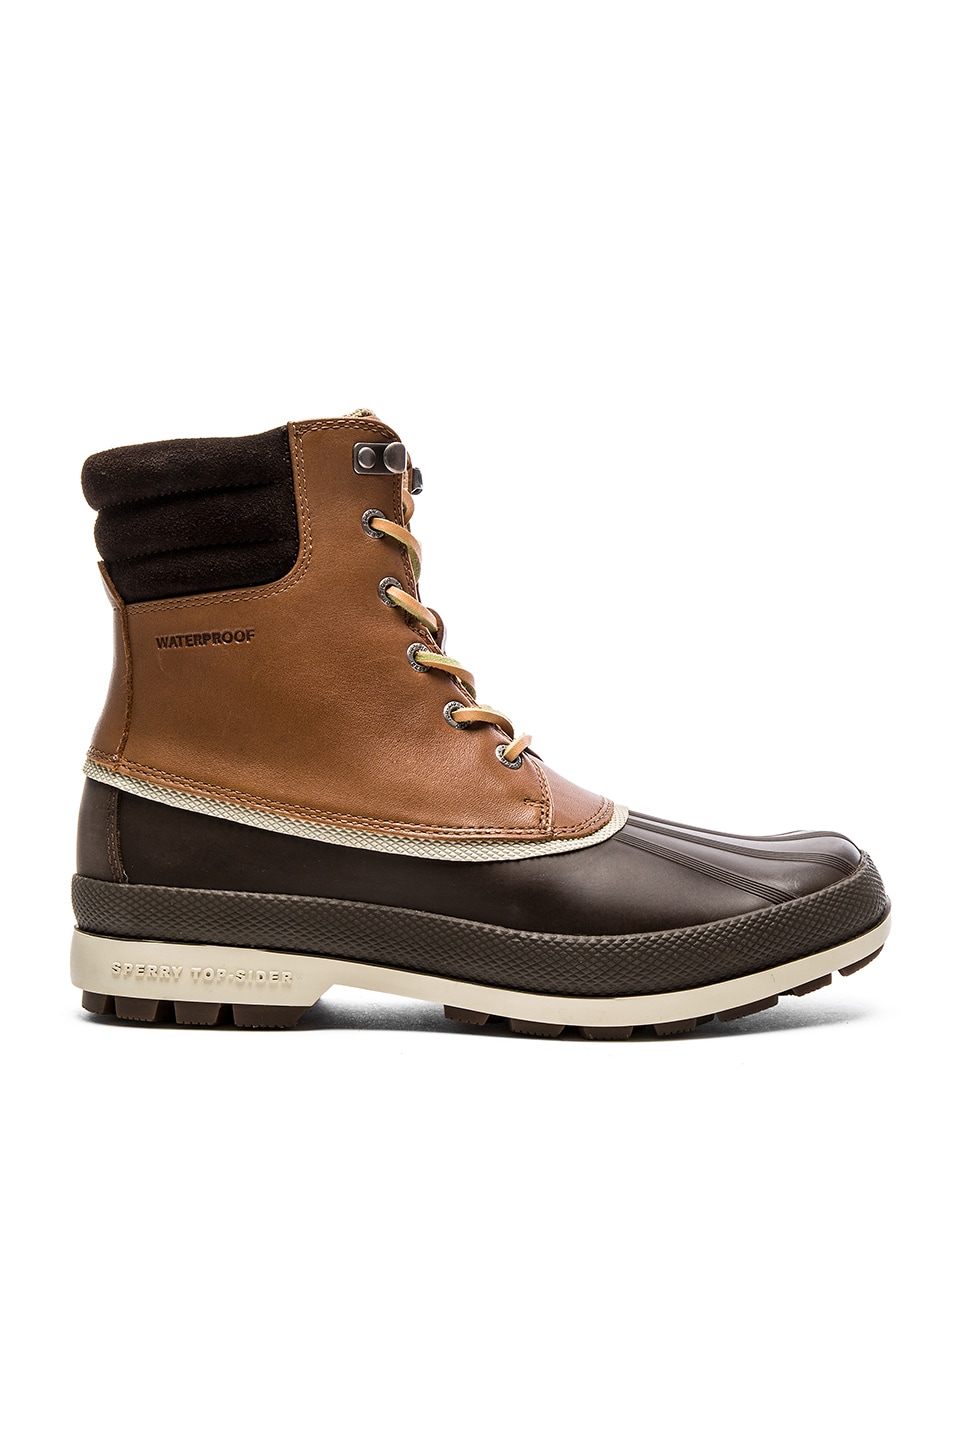 Sperry Top-Sider Cold Bay Boot in Brown Tan